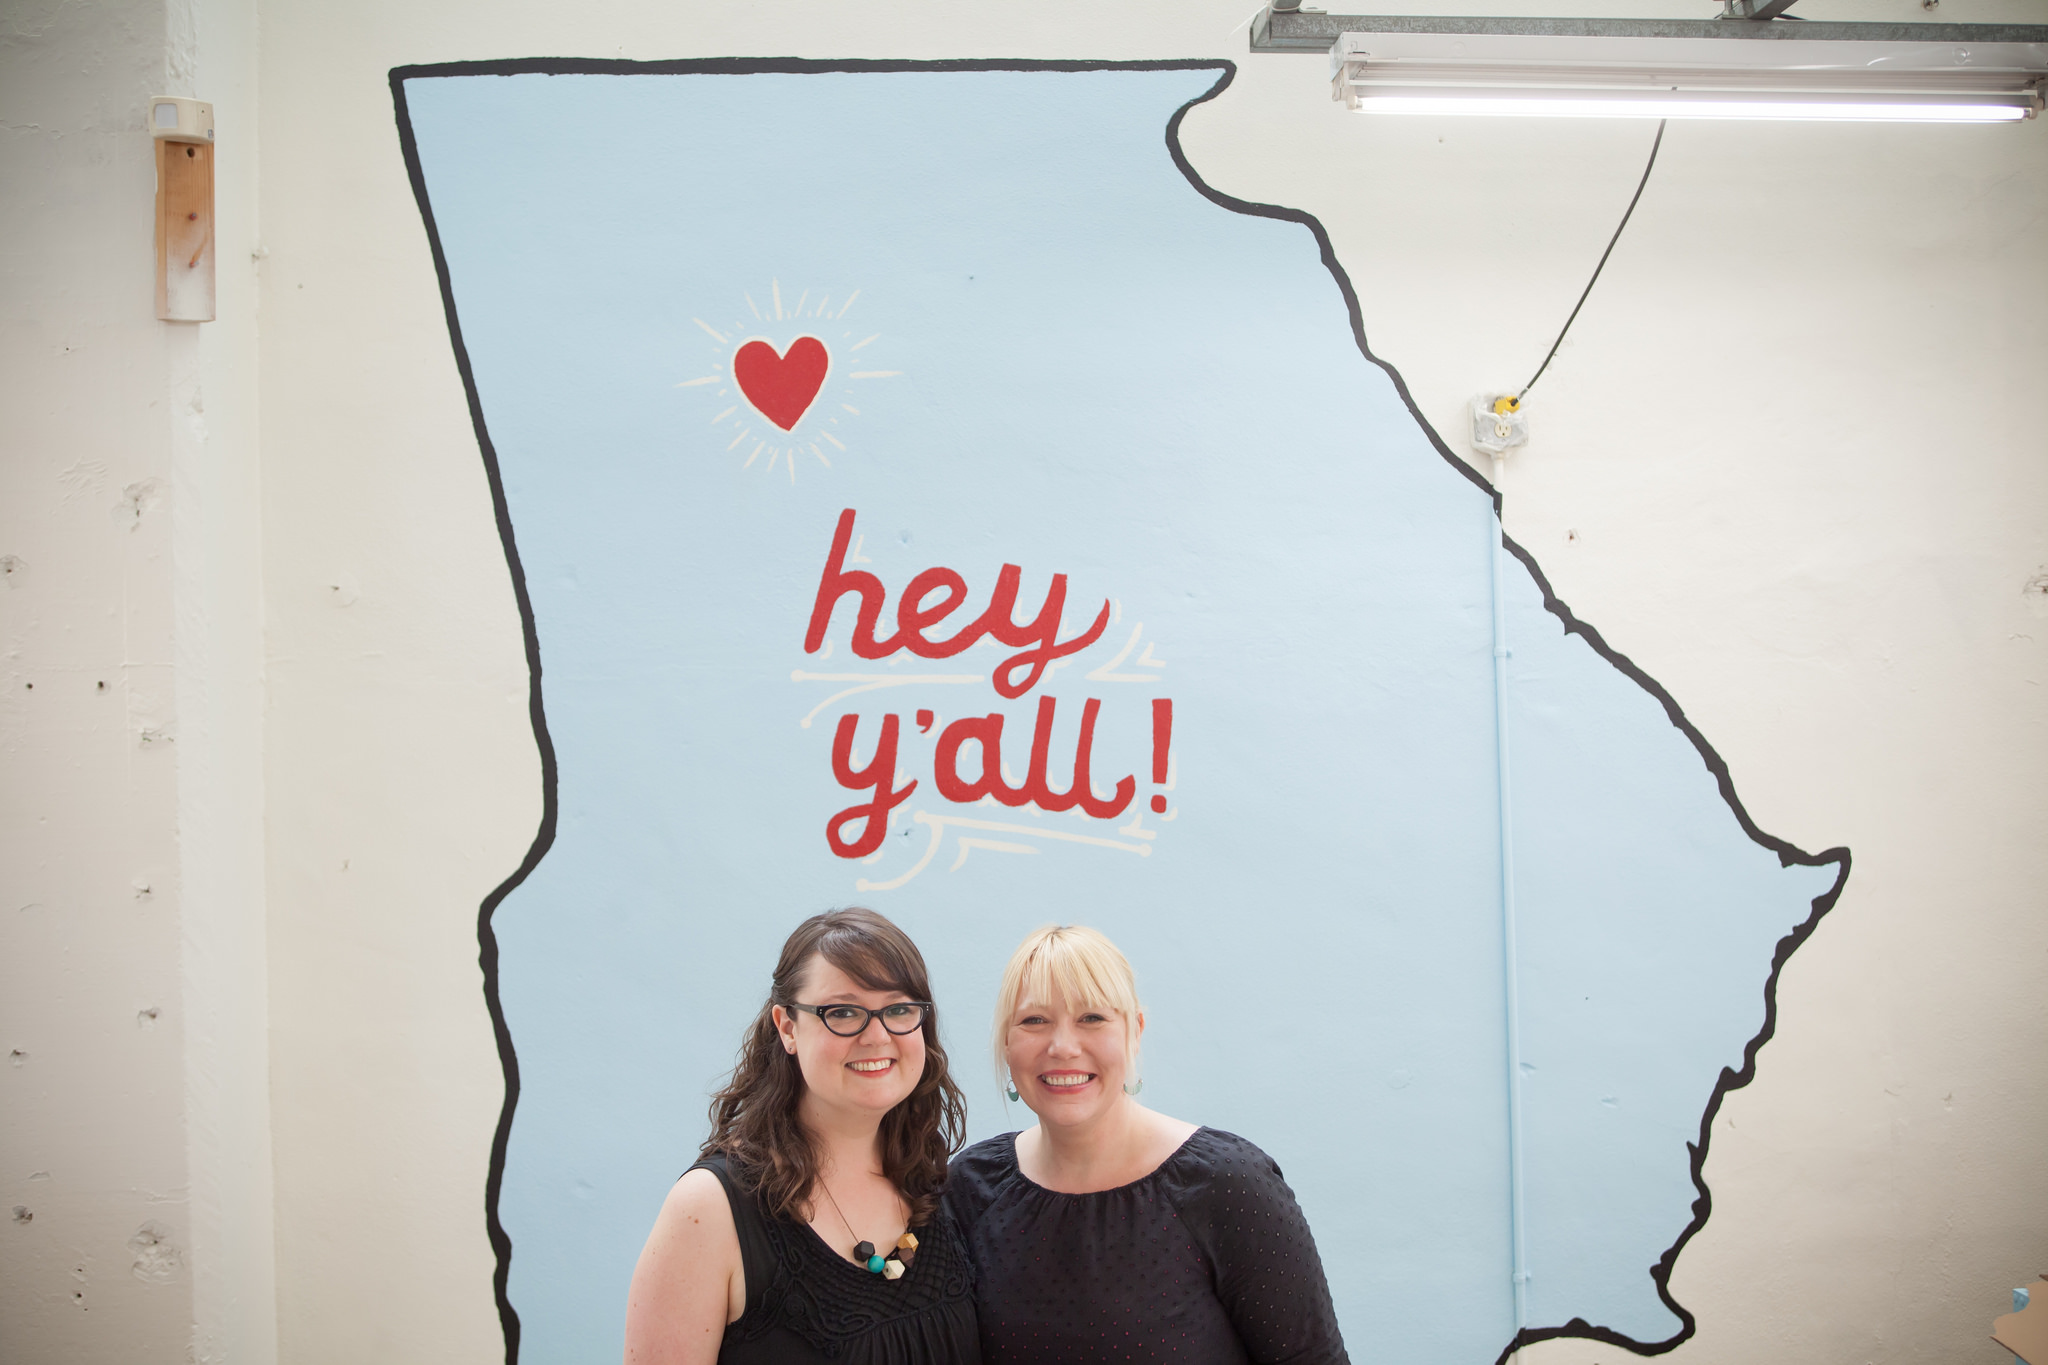 Both Atlanta natives, Christy Petterson and Shannon Mulkey Green founded the Indie Craft Experience in 2005.